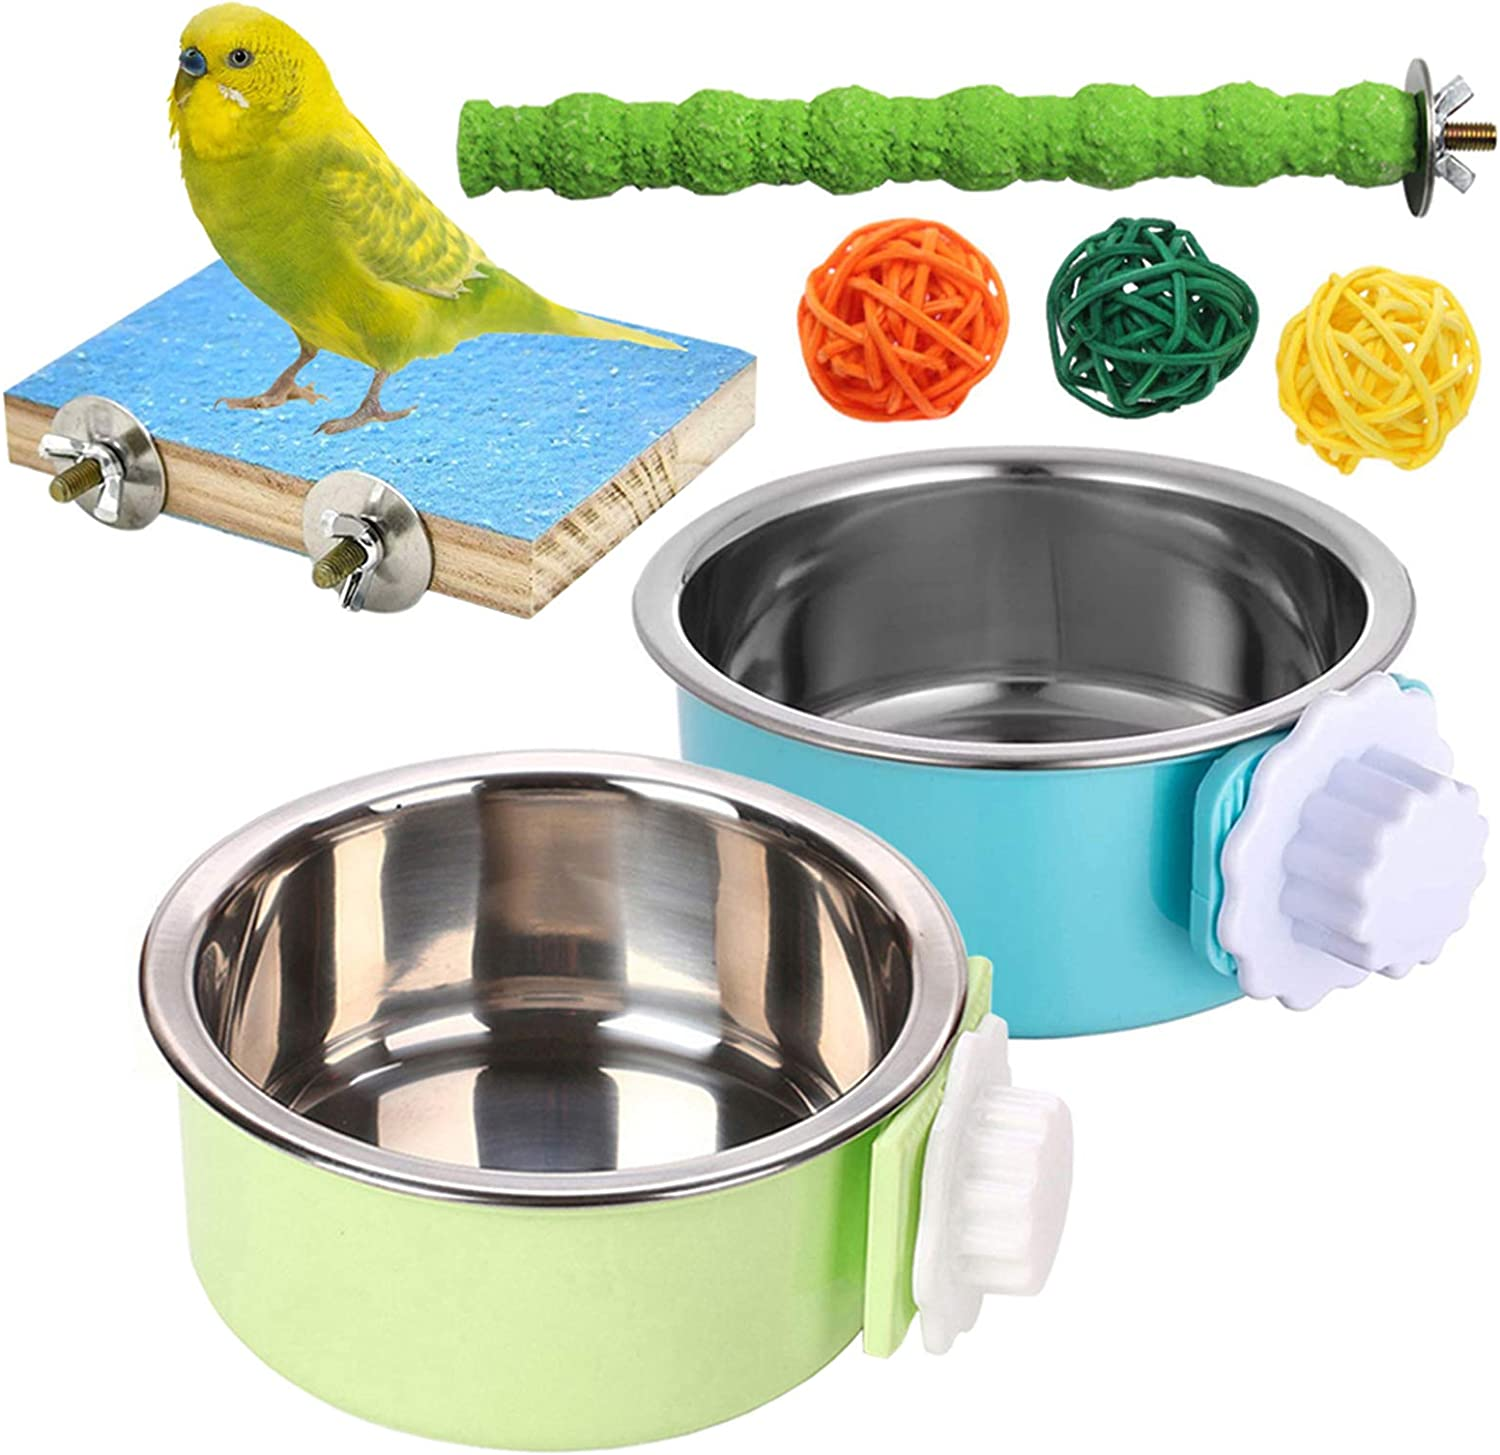 kathson Bird Parrot Feeding Cups, Stainless Steel Coop Cups Food & Water Bowl Feeder Dish Cup with Parrots Perch Stand Platform Toy for Lovebird Budgies Finches Cockatiel(7 PCS)